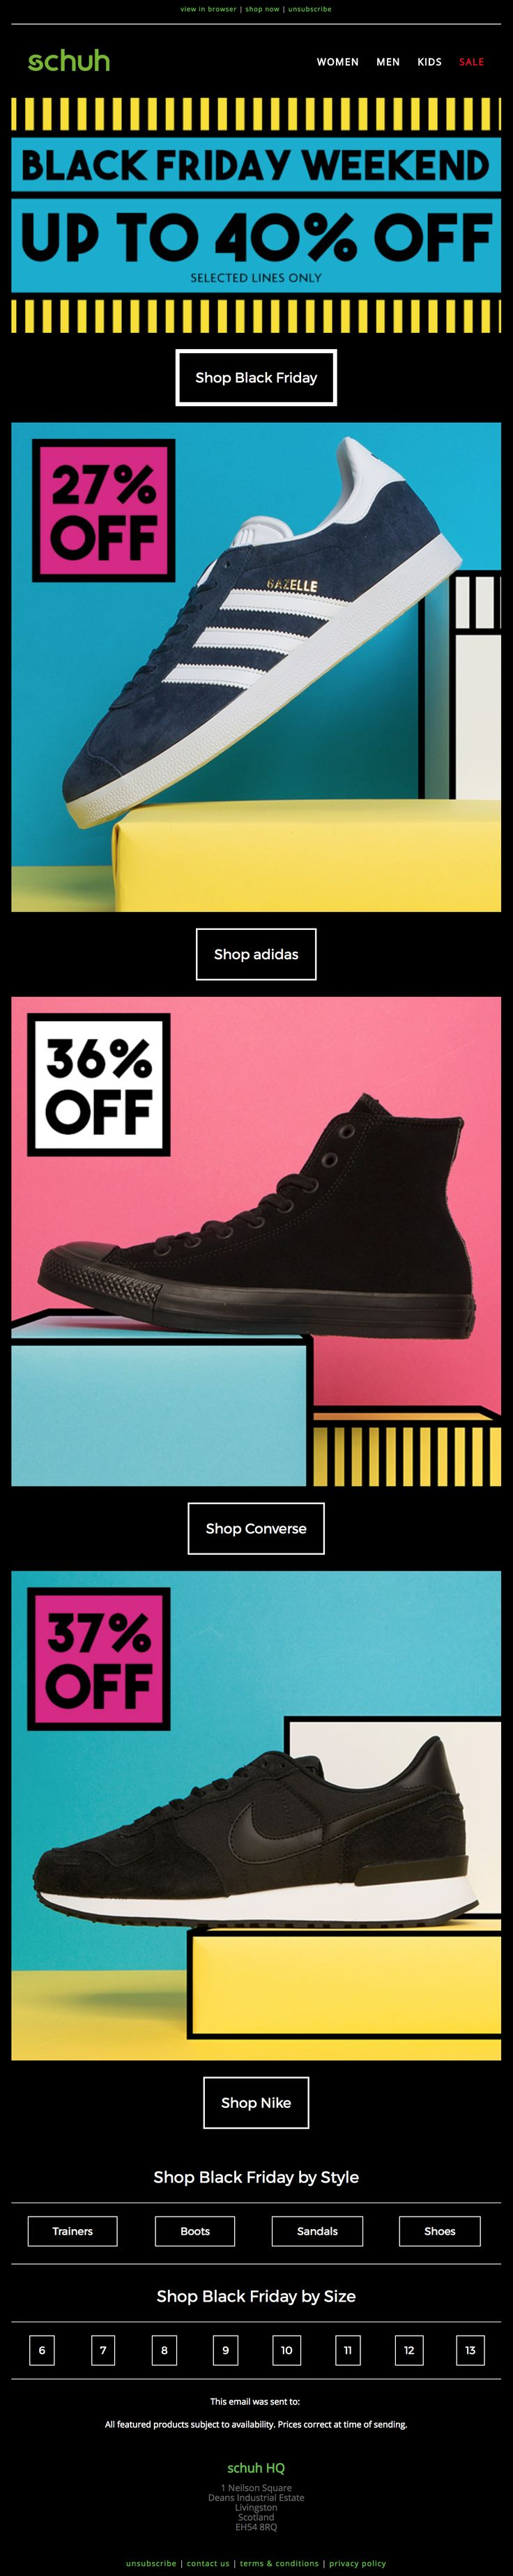 Nice email design for Black Friday from Schuh